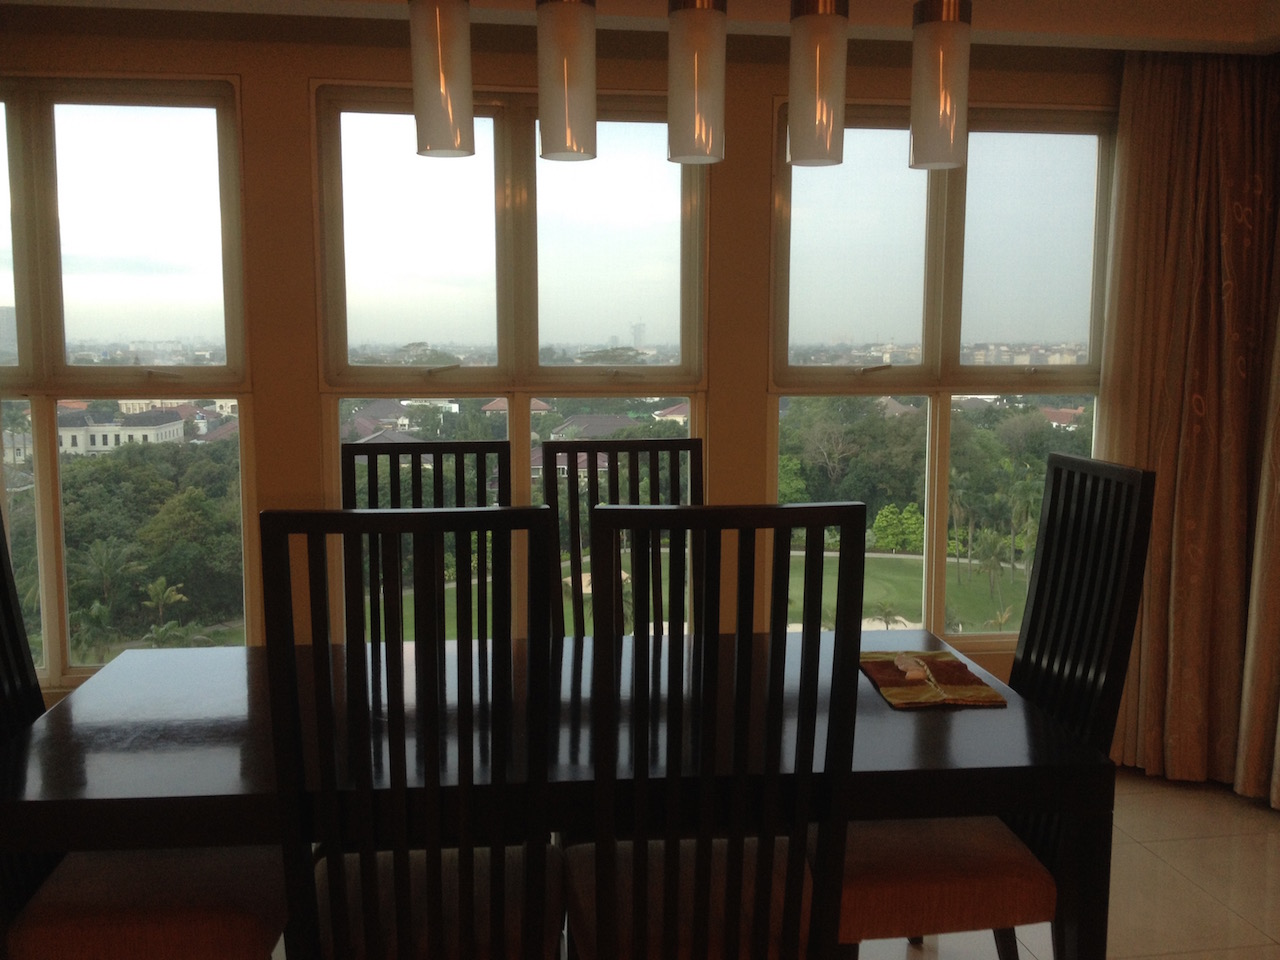 Living the Expat Life in Jakarta for 3 Weeks